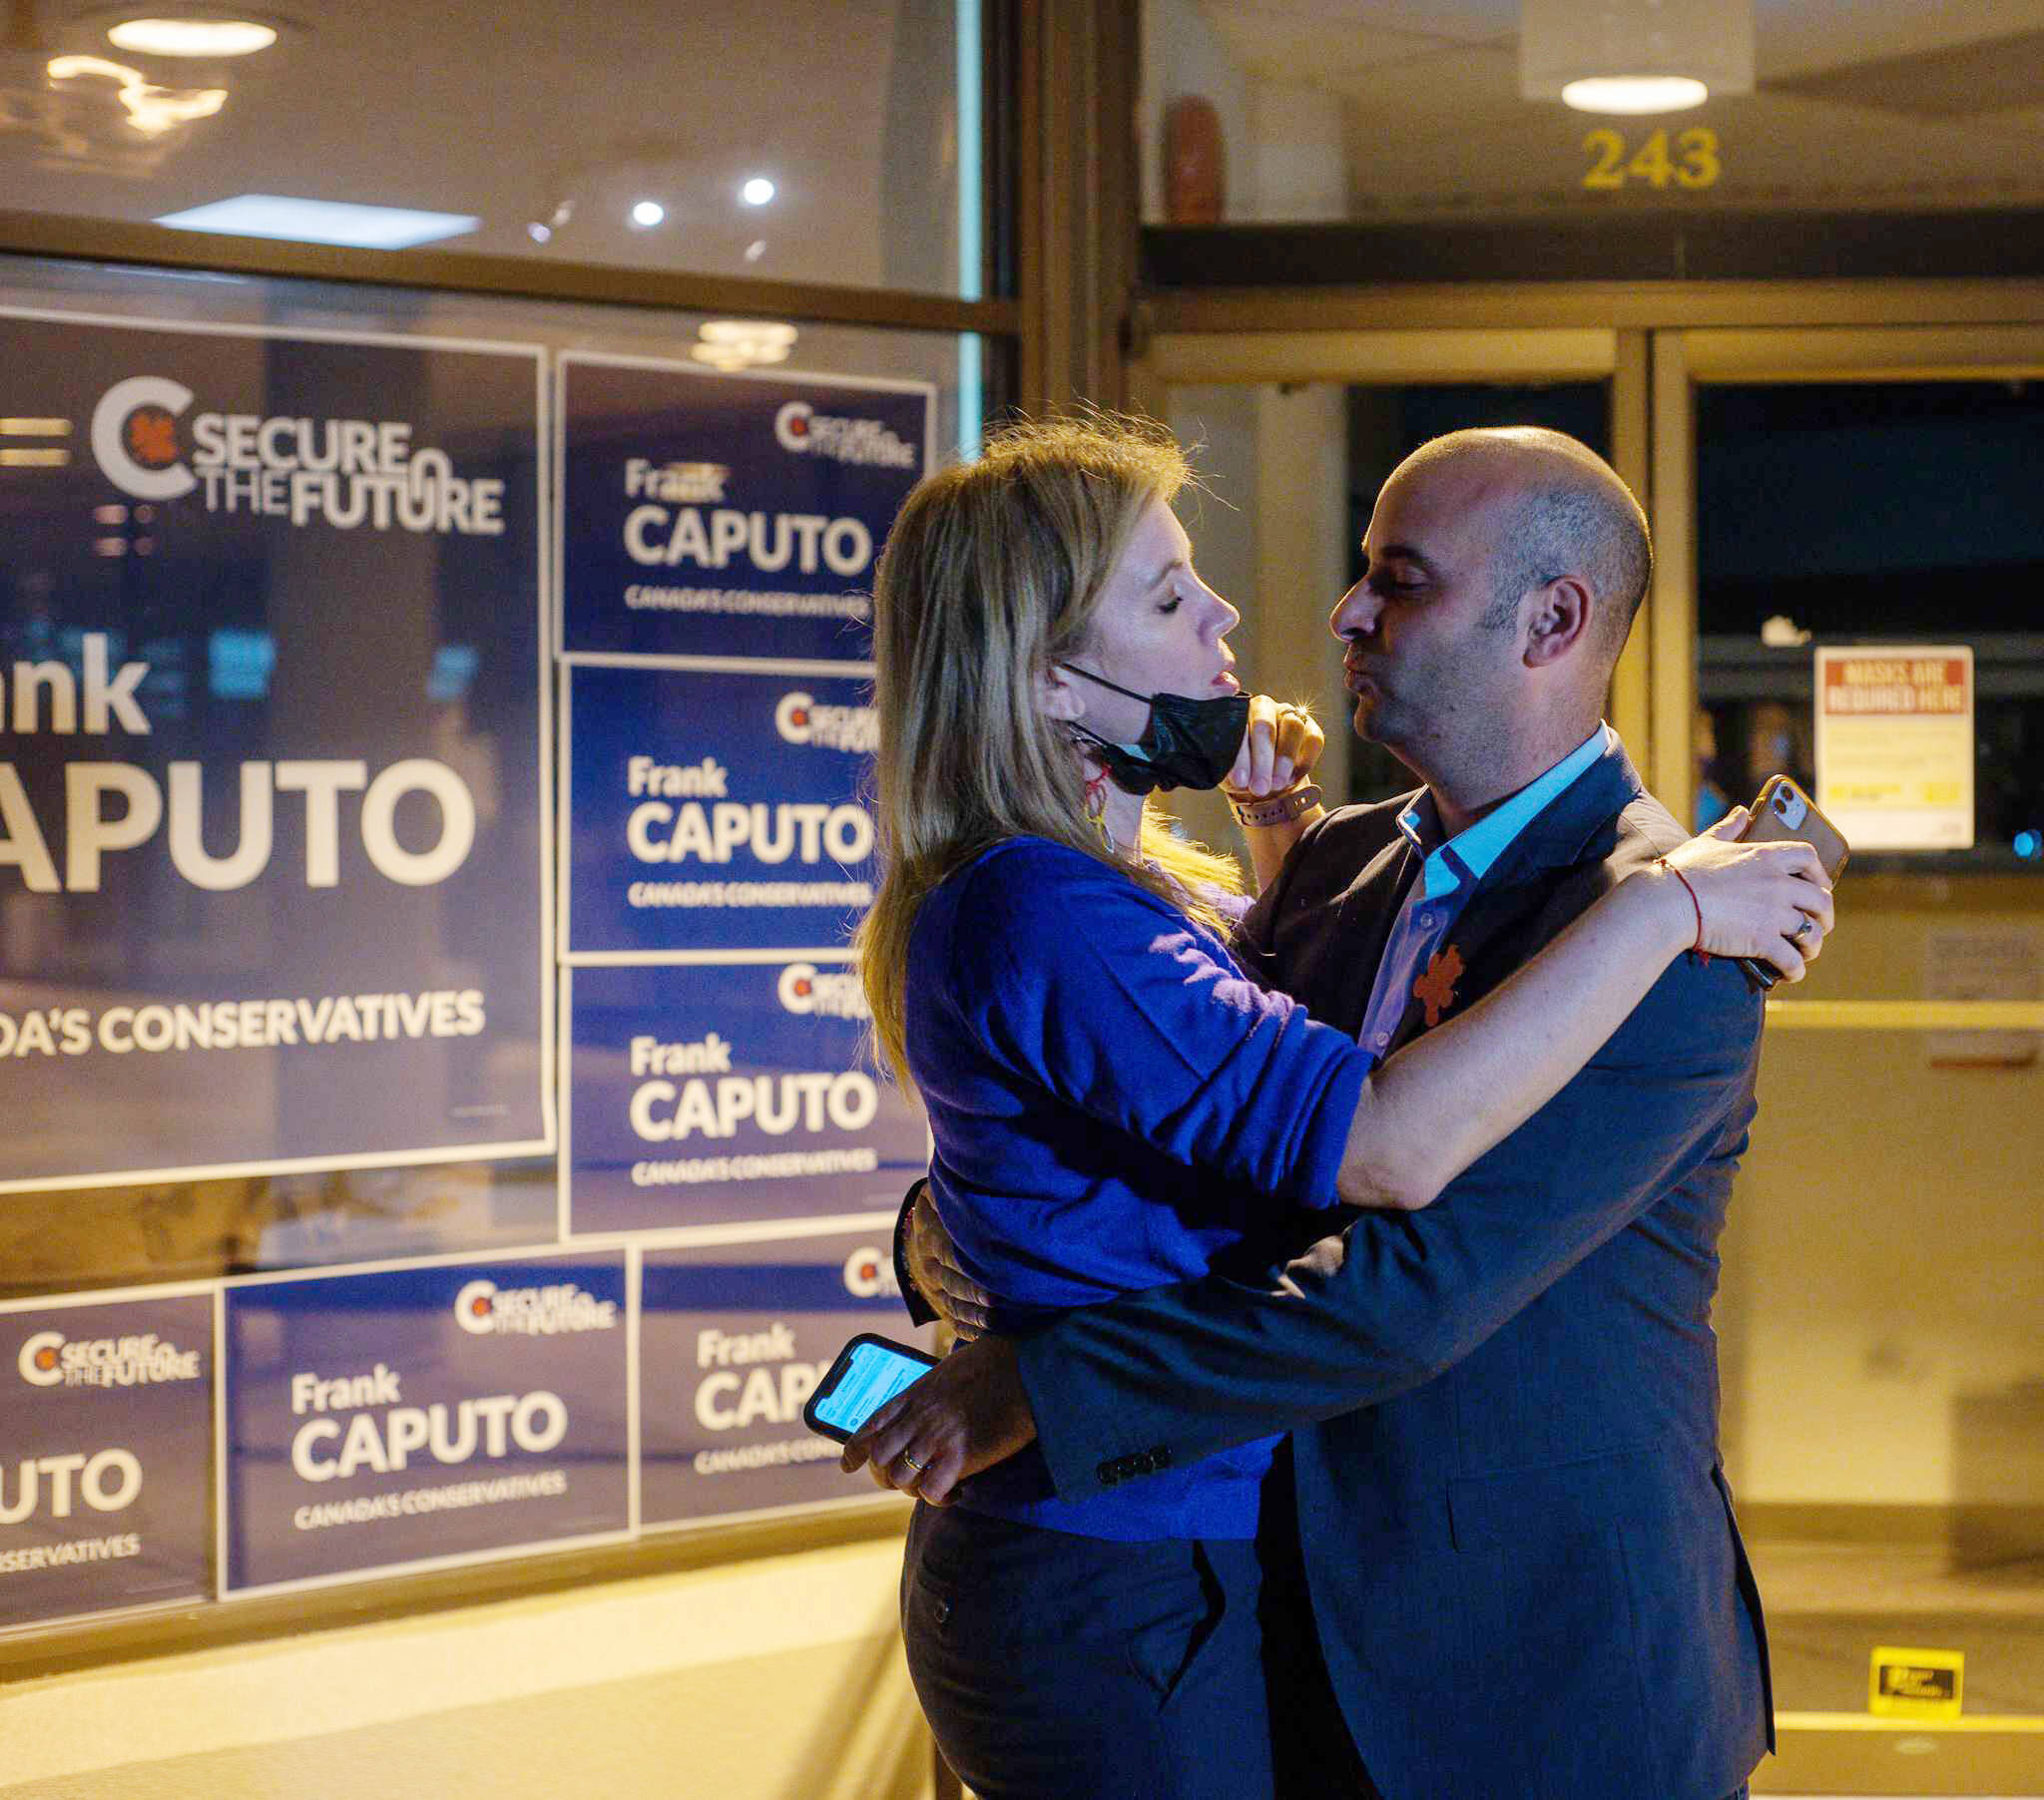 Frank Caputo shares a celebratory hug with his wife Odette Dempsey-Caputo at his Seymour Street campaign office on election night. (Dave Eagles photo - KTW).